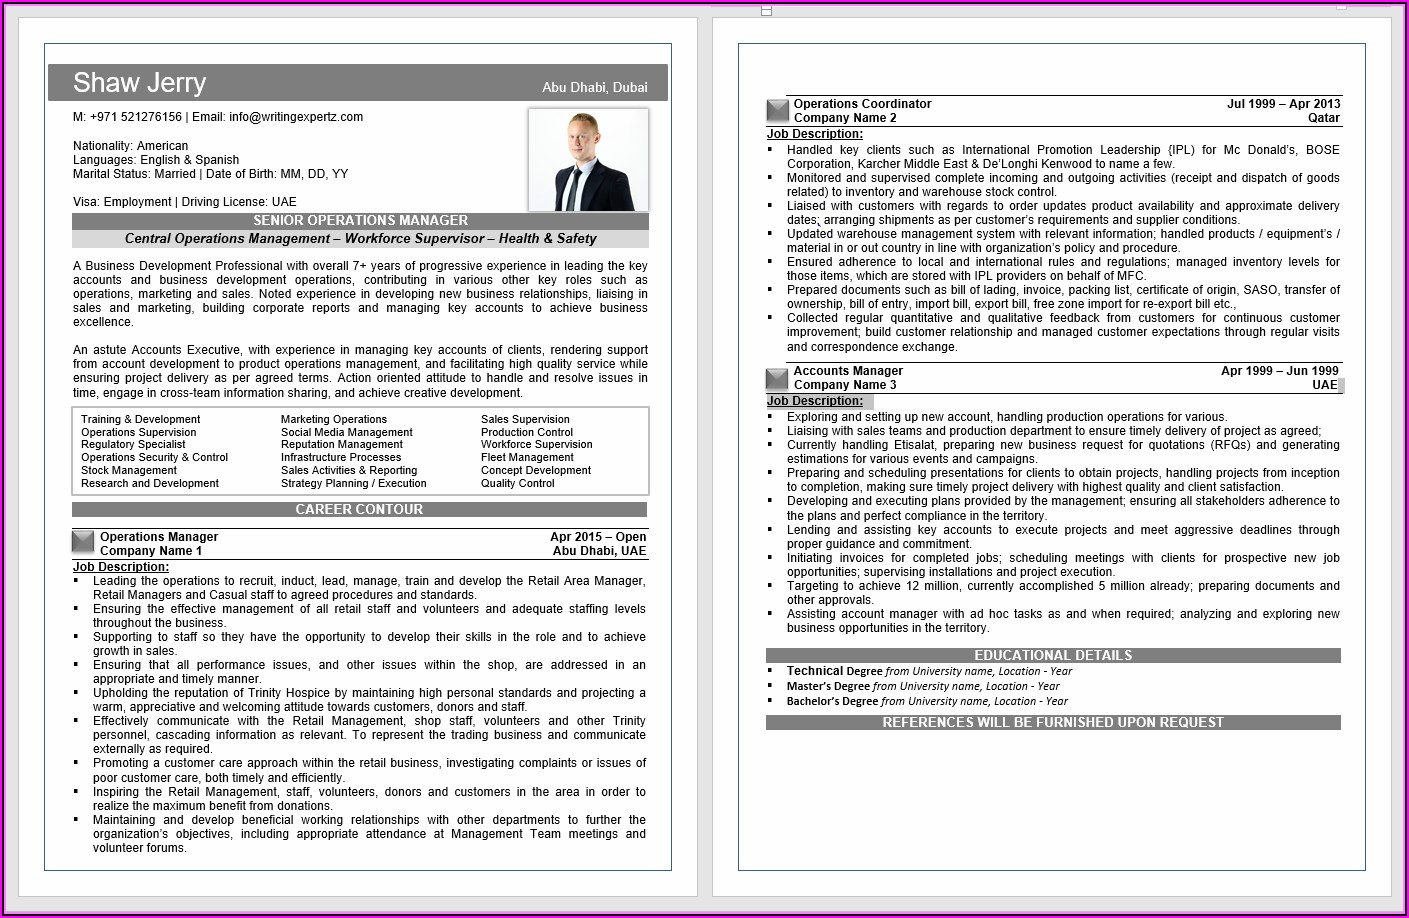 Optimus Professional Cv Writing & Resume Writing Services In Dubai Uae Www.optmc.com